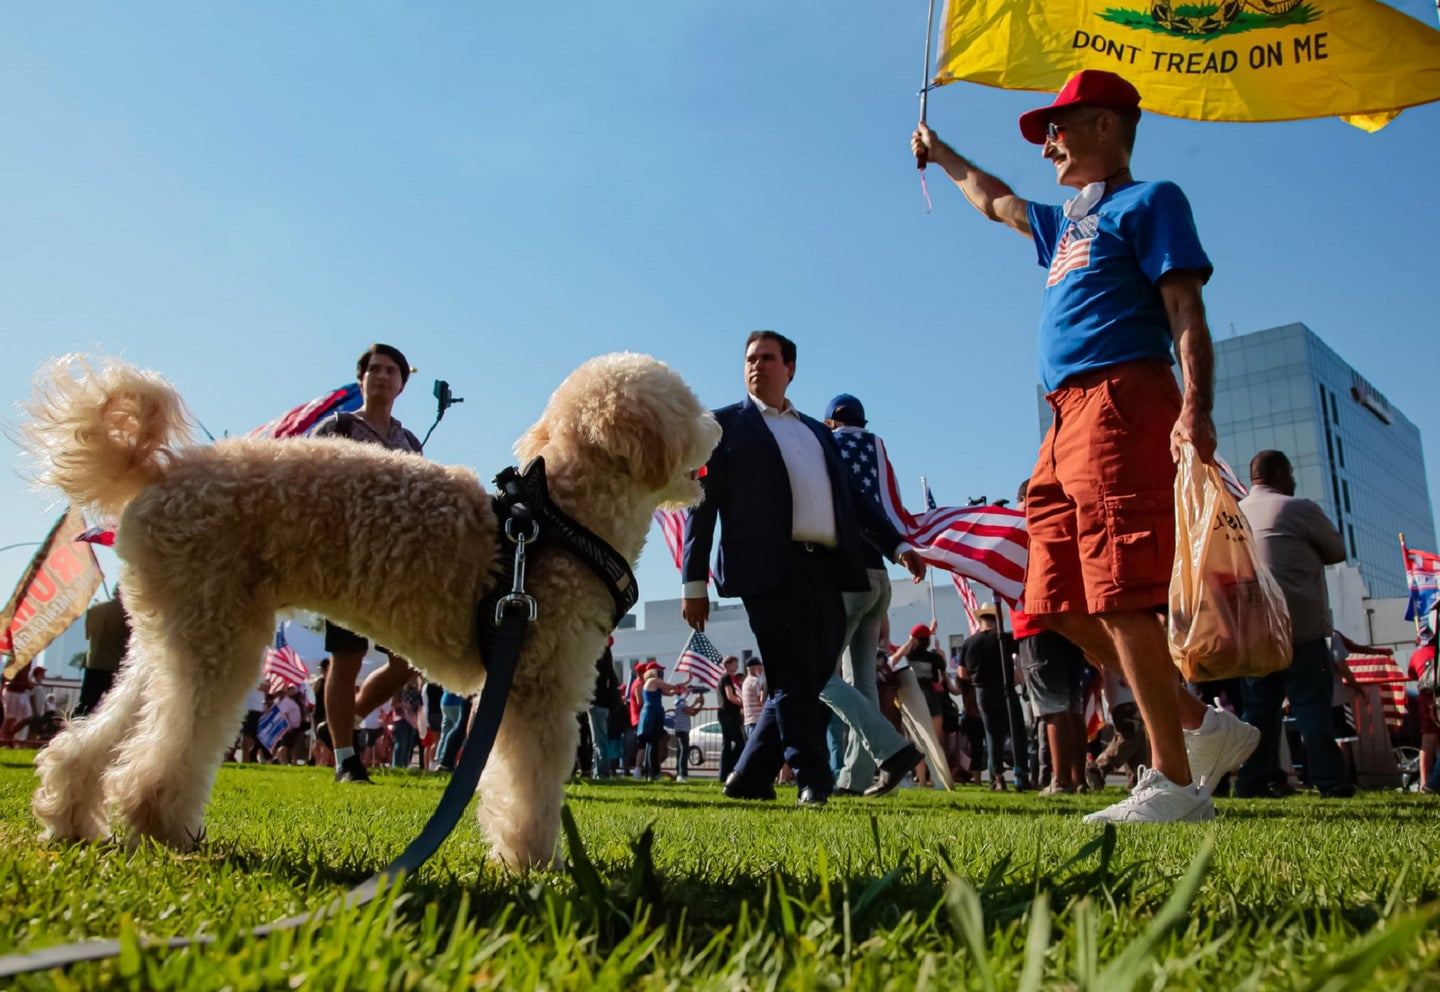 Labradoodle dog looking at a person in a blue shirt with a yellow